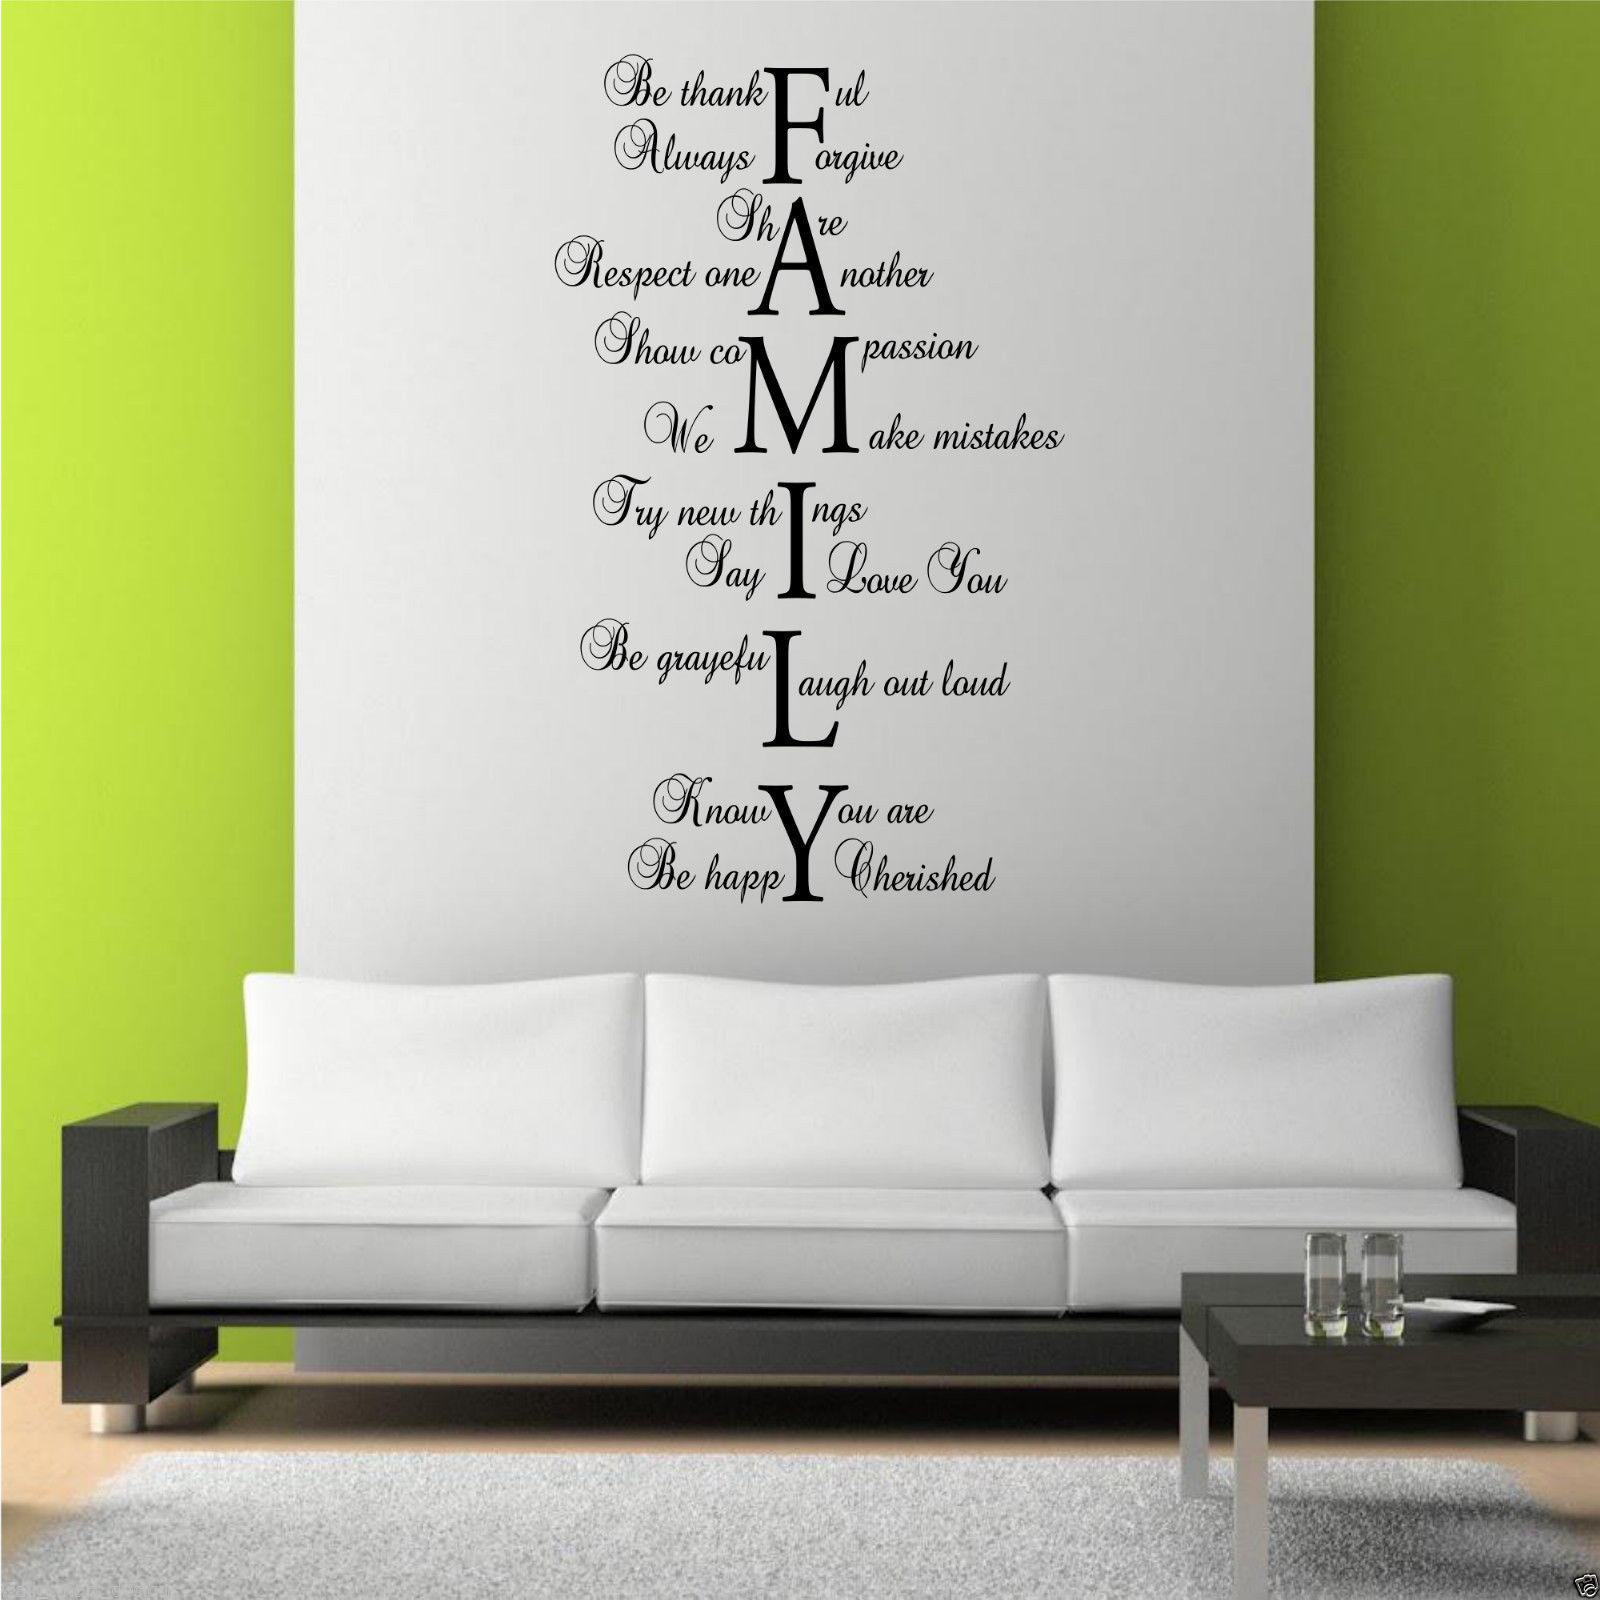 Family love life wall art sticker quote room decal mural for Room wall decor